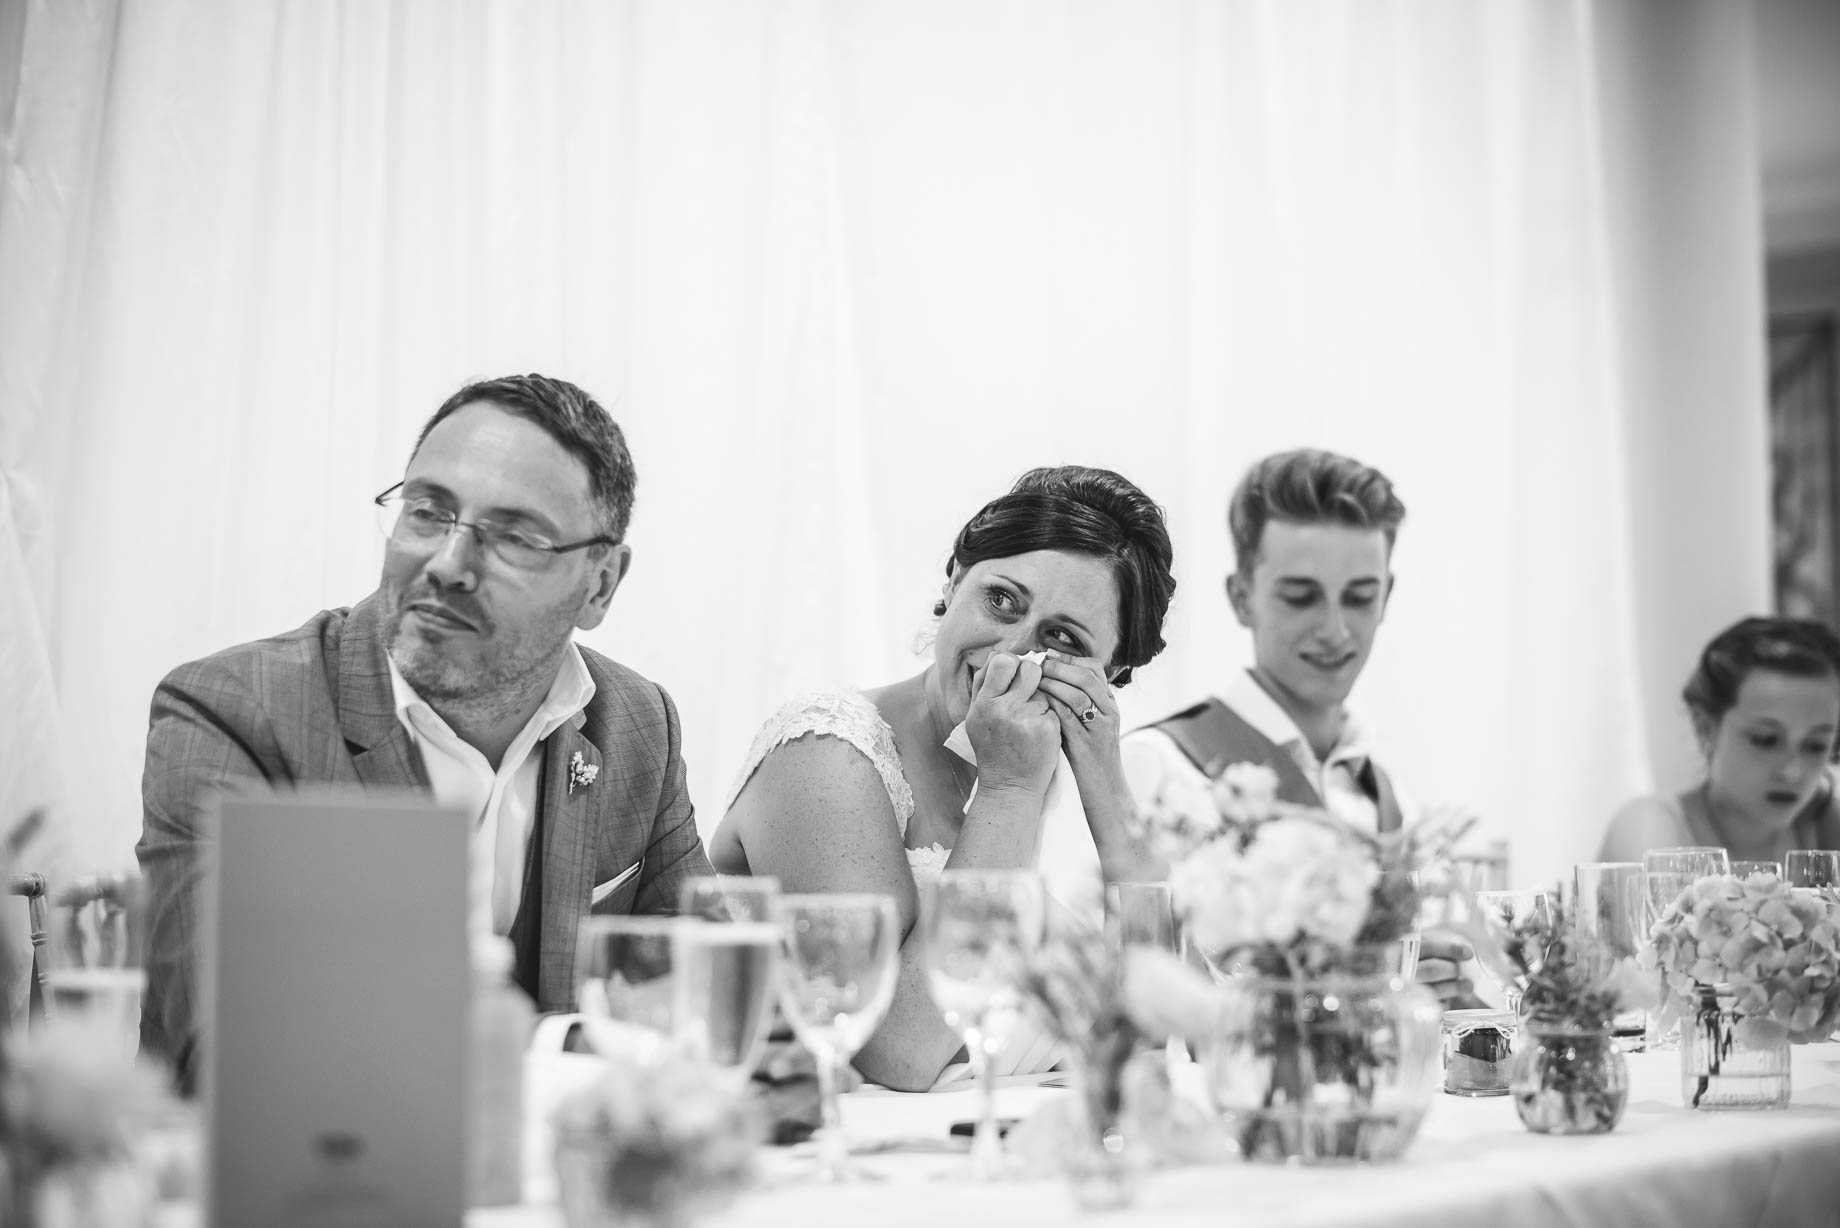 Luton Hoo wedding photography by Guy Collier Photography - Lauren and Gem (145 of 178)